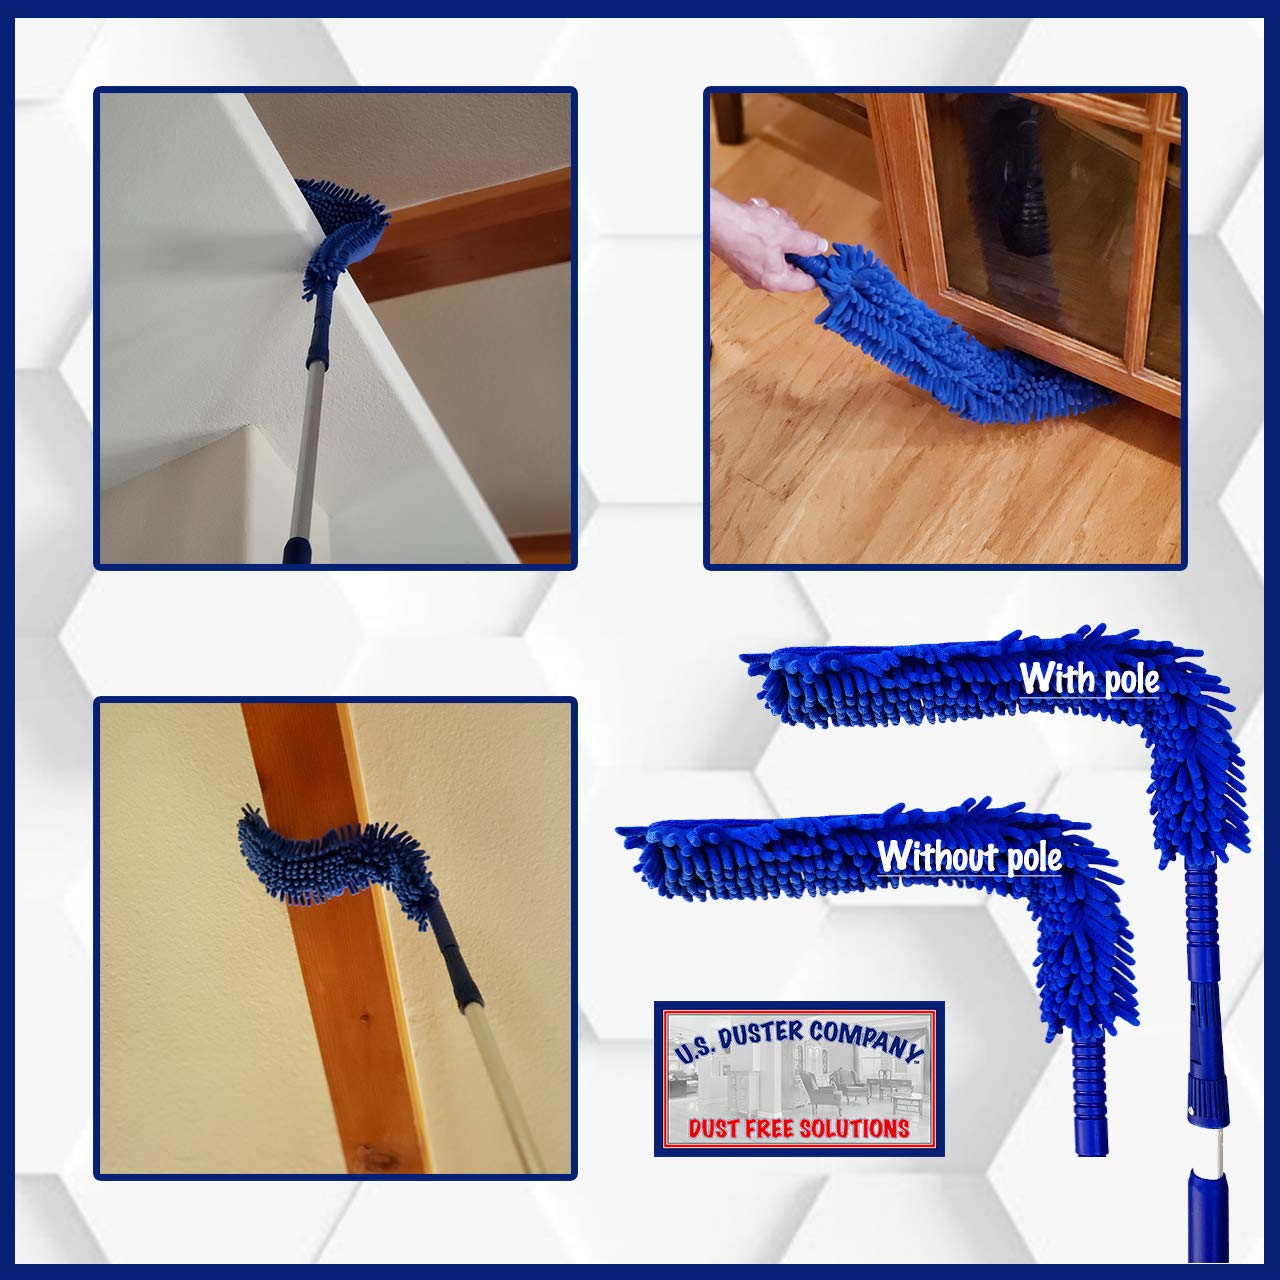 Ceiling Fan Duster Cobweb Duster, Extendable Reach 20 feet,   3-Stage Aluminum Telescoping Pole   Extends for High Ceiling Duster   Long Handle Plus 2 Duster Heads by U.S. Duster Company (Image #3)